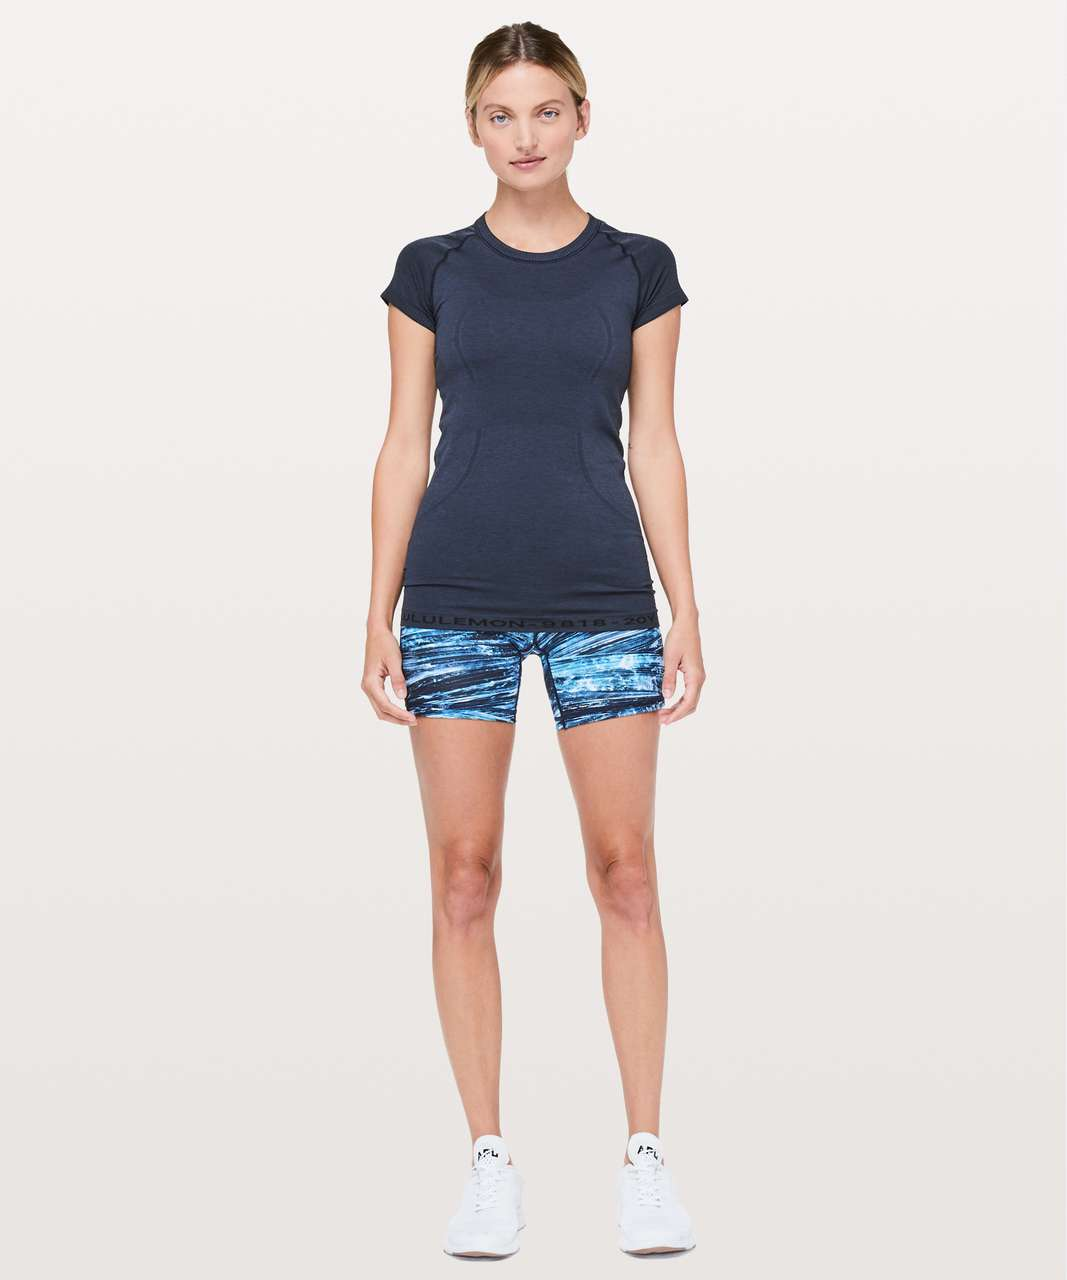 Lululemon Swiftly Tech Short Sleeve Crew *20Y Collection - True Navy / Black